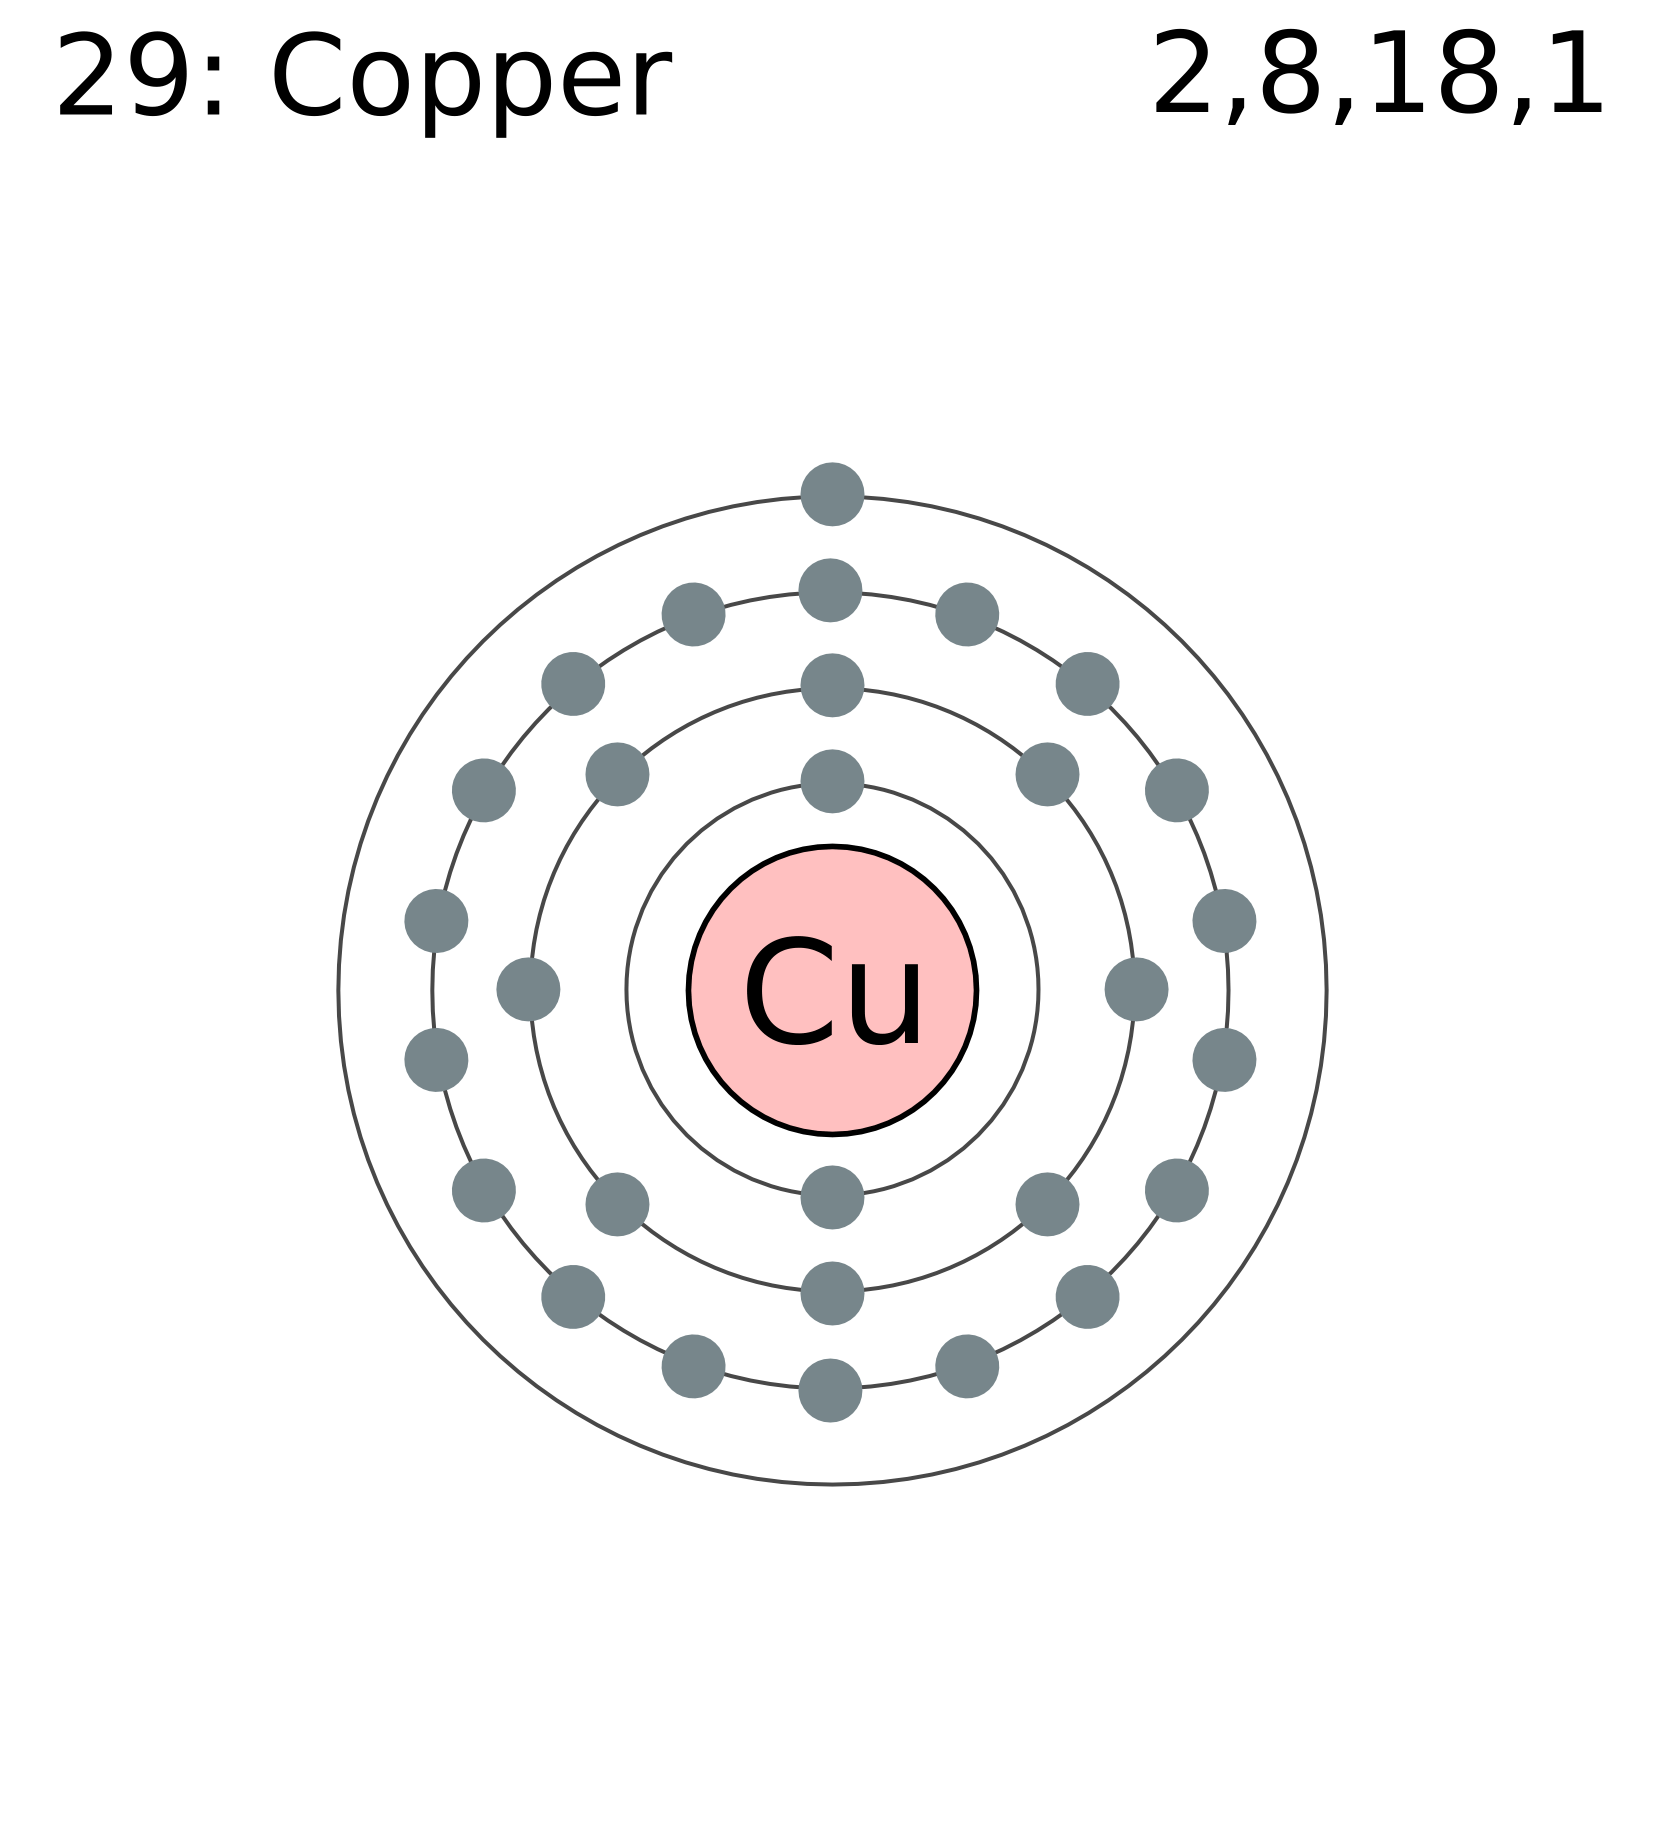 copper atom diagram towing wiring uk file electron shell 029 png wikimedia commons